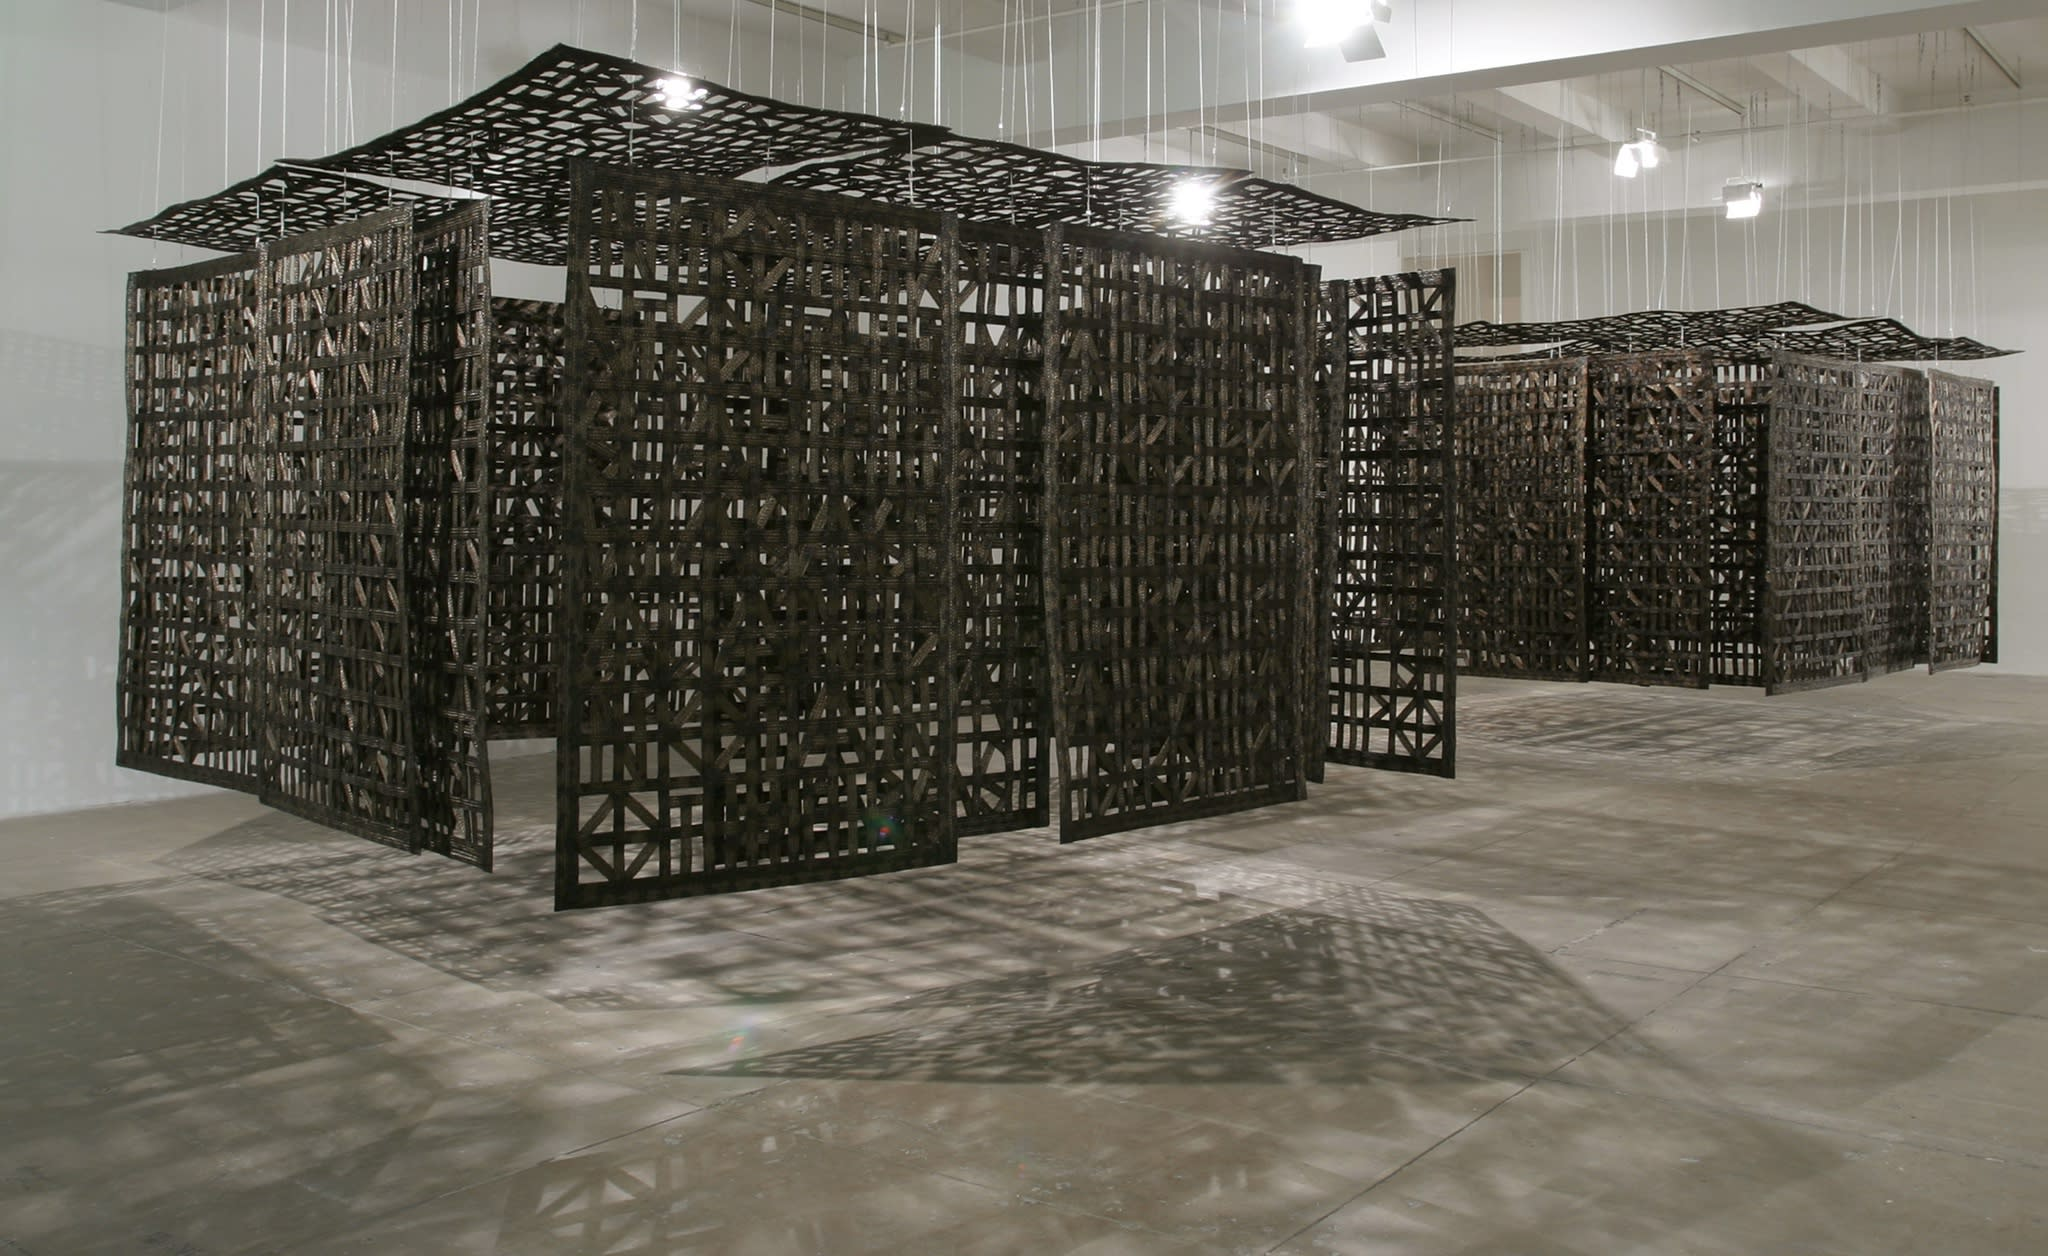 A large wooden sculpture, made up of several panels made up of wooden carved patterns which hang from the ceiling, forming a partially enclosed space.